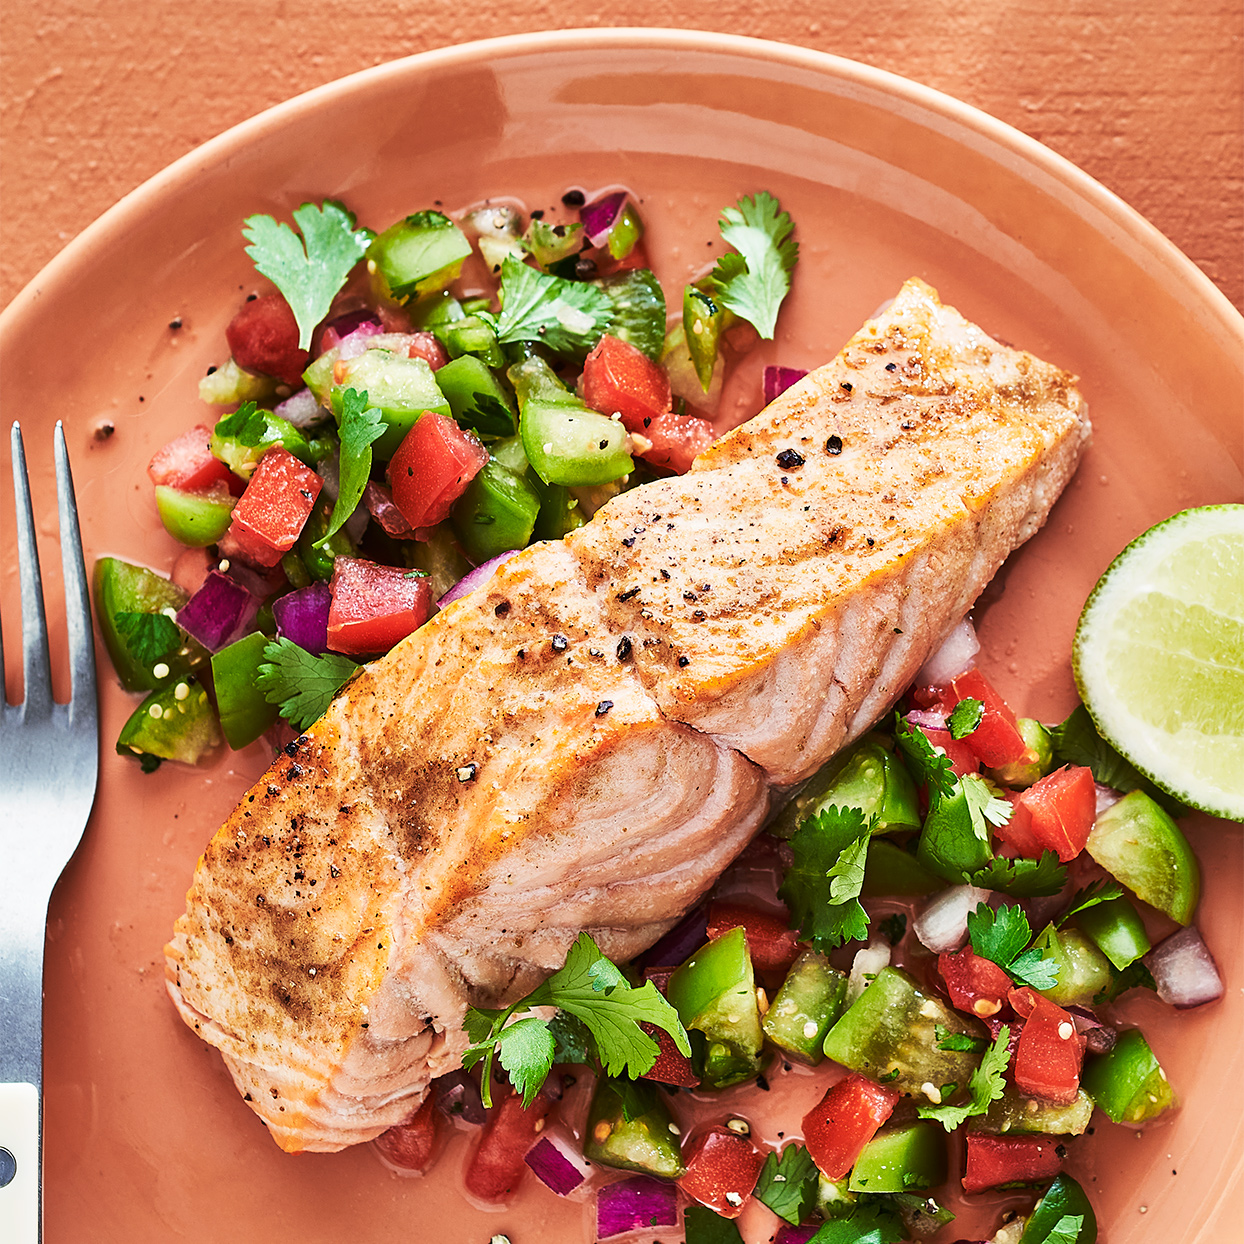 We made this chopped salad with pico de gallo in mind. Tangy tomatillos add fresh crunch to the classic mixture of tomatoes, cilantro and onion to brighten up this broiled salmon recipe. Source: EatingWell Magazine, July / August 2020